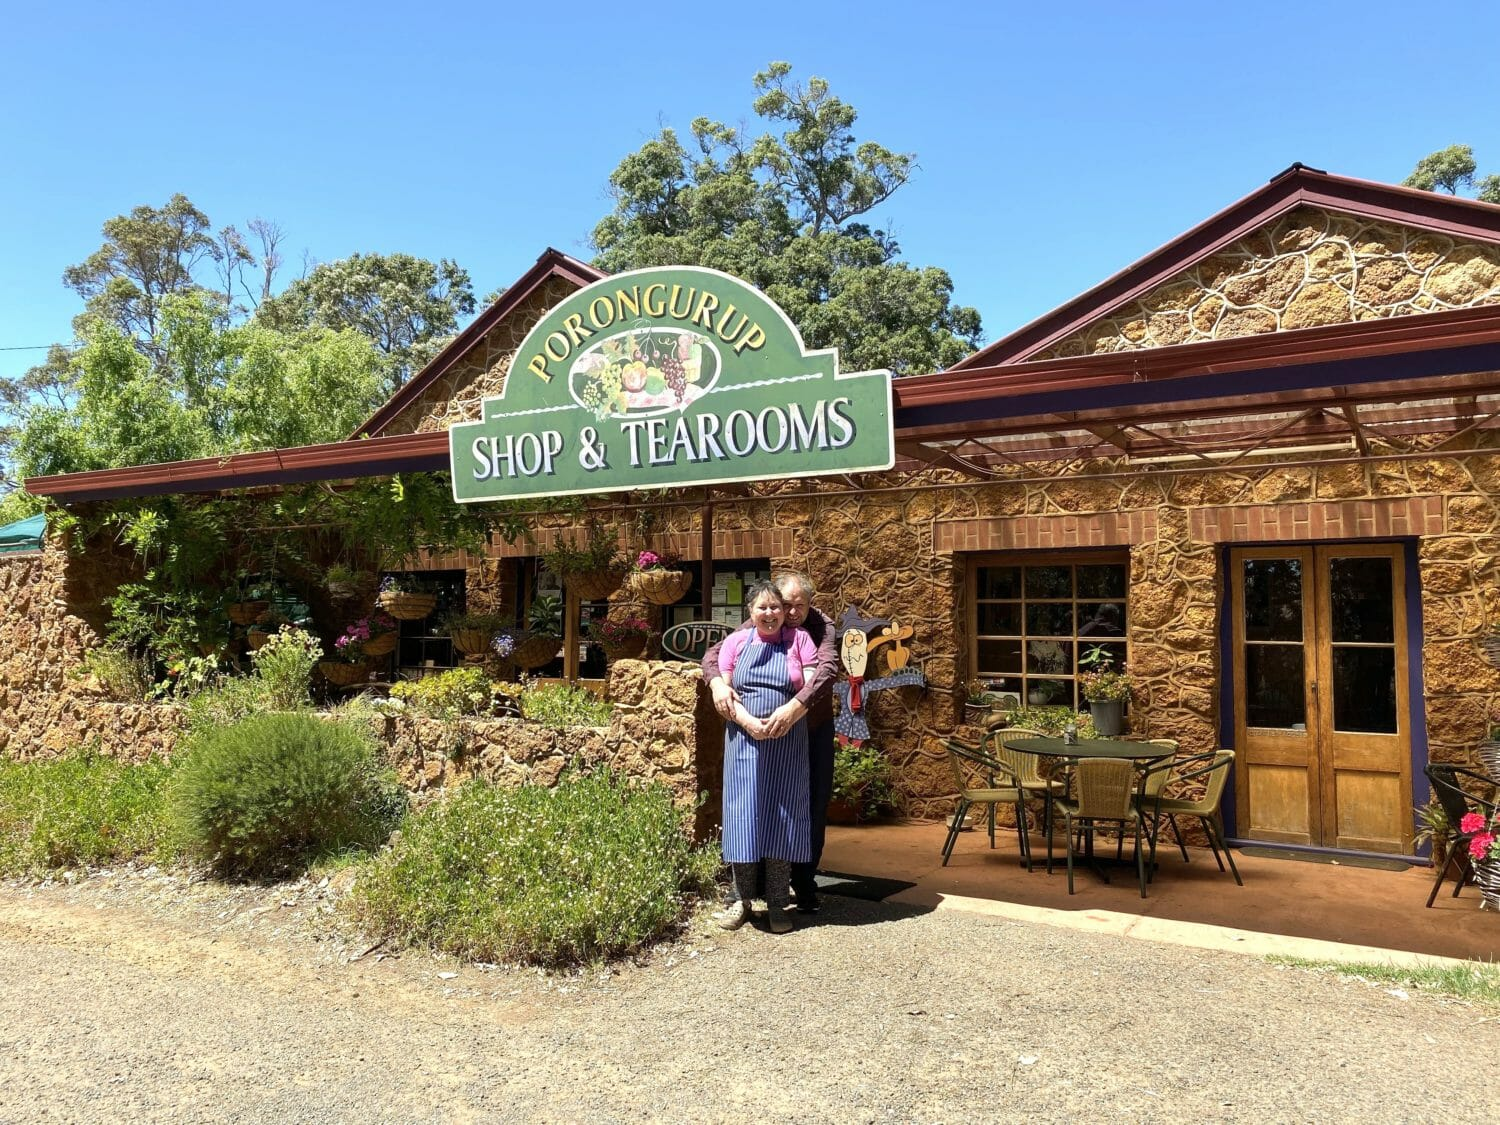 Porongurup Village Inn, Shop & Tearoom